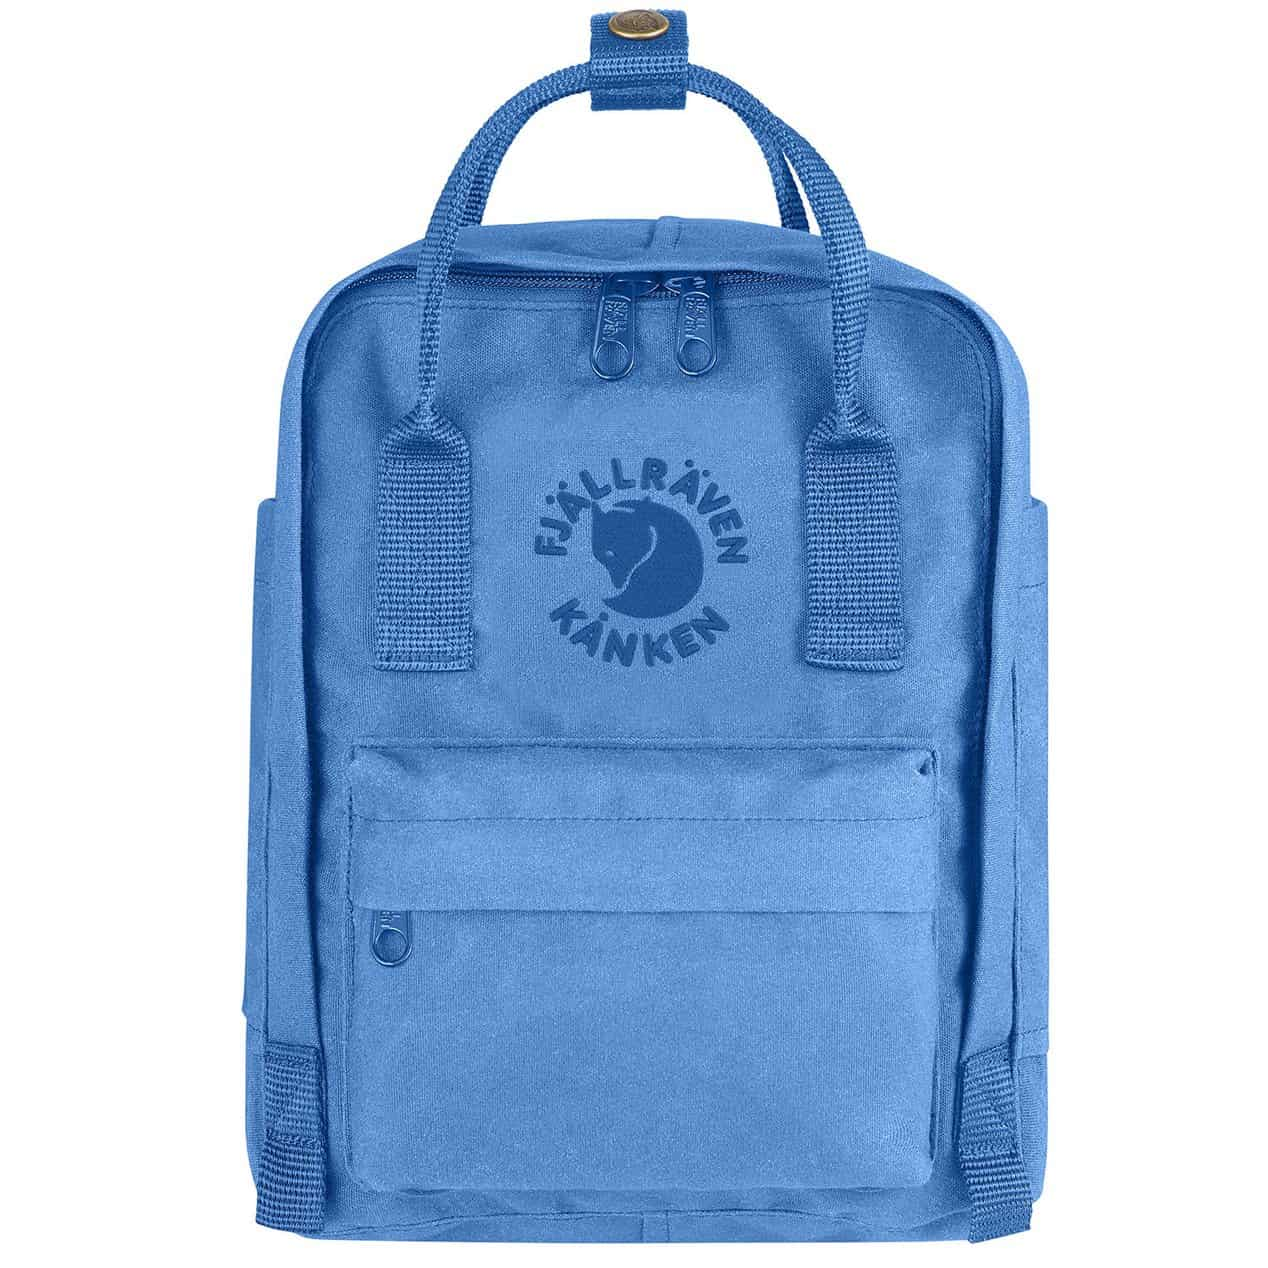 f58b7afa1bfa Looking for a practical and colorful backpack that will suit both your  child s first school year and family outings in the forest